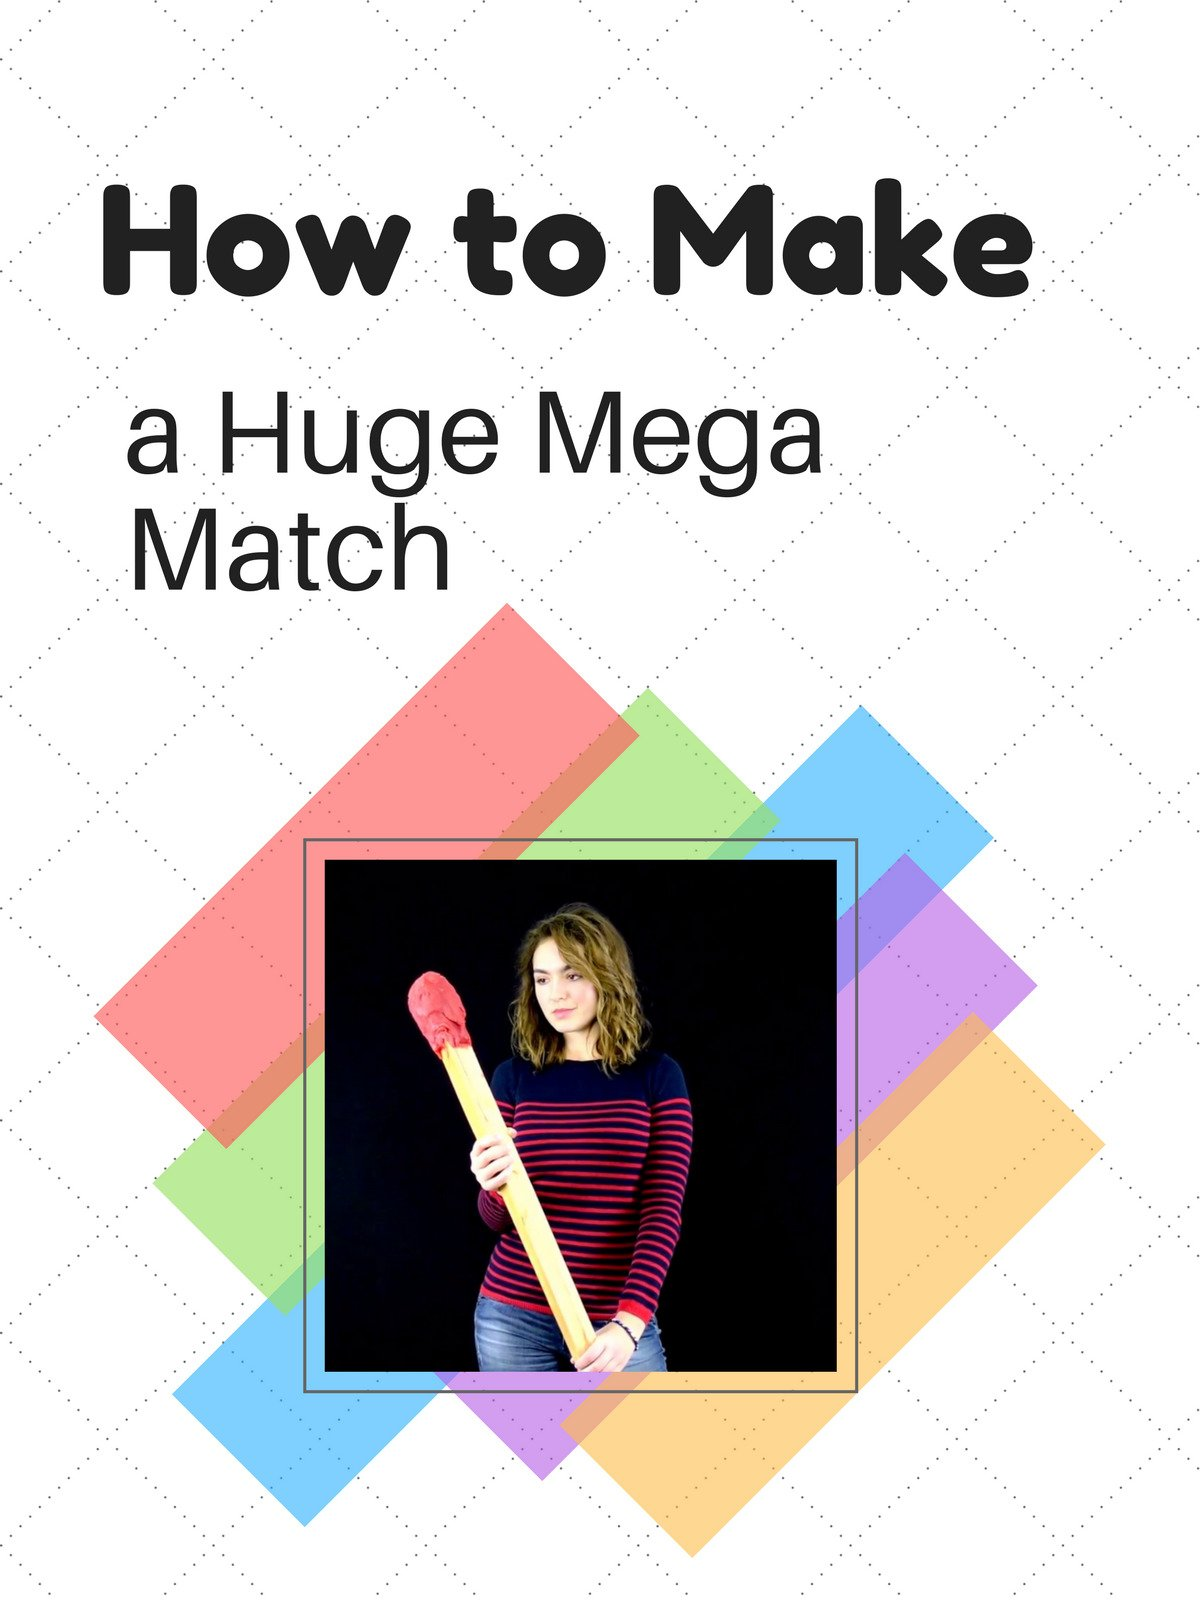 How to Make a Huge Mega Match